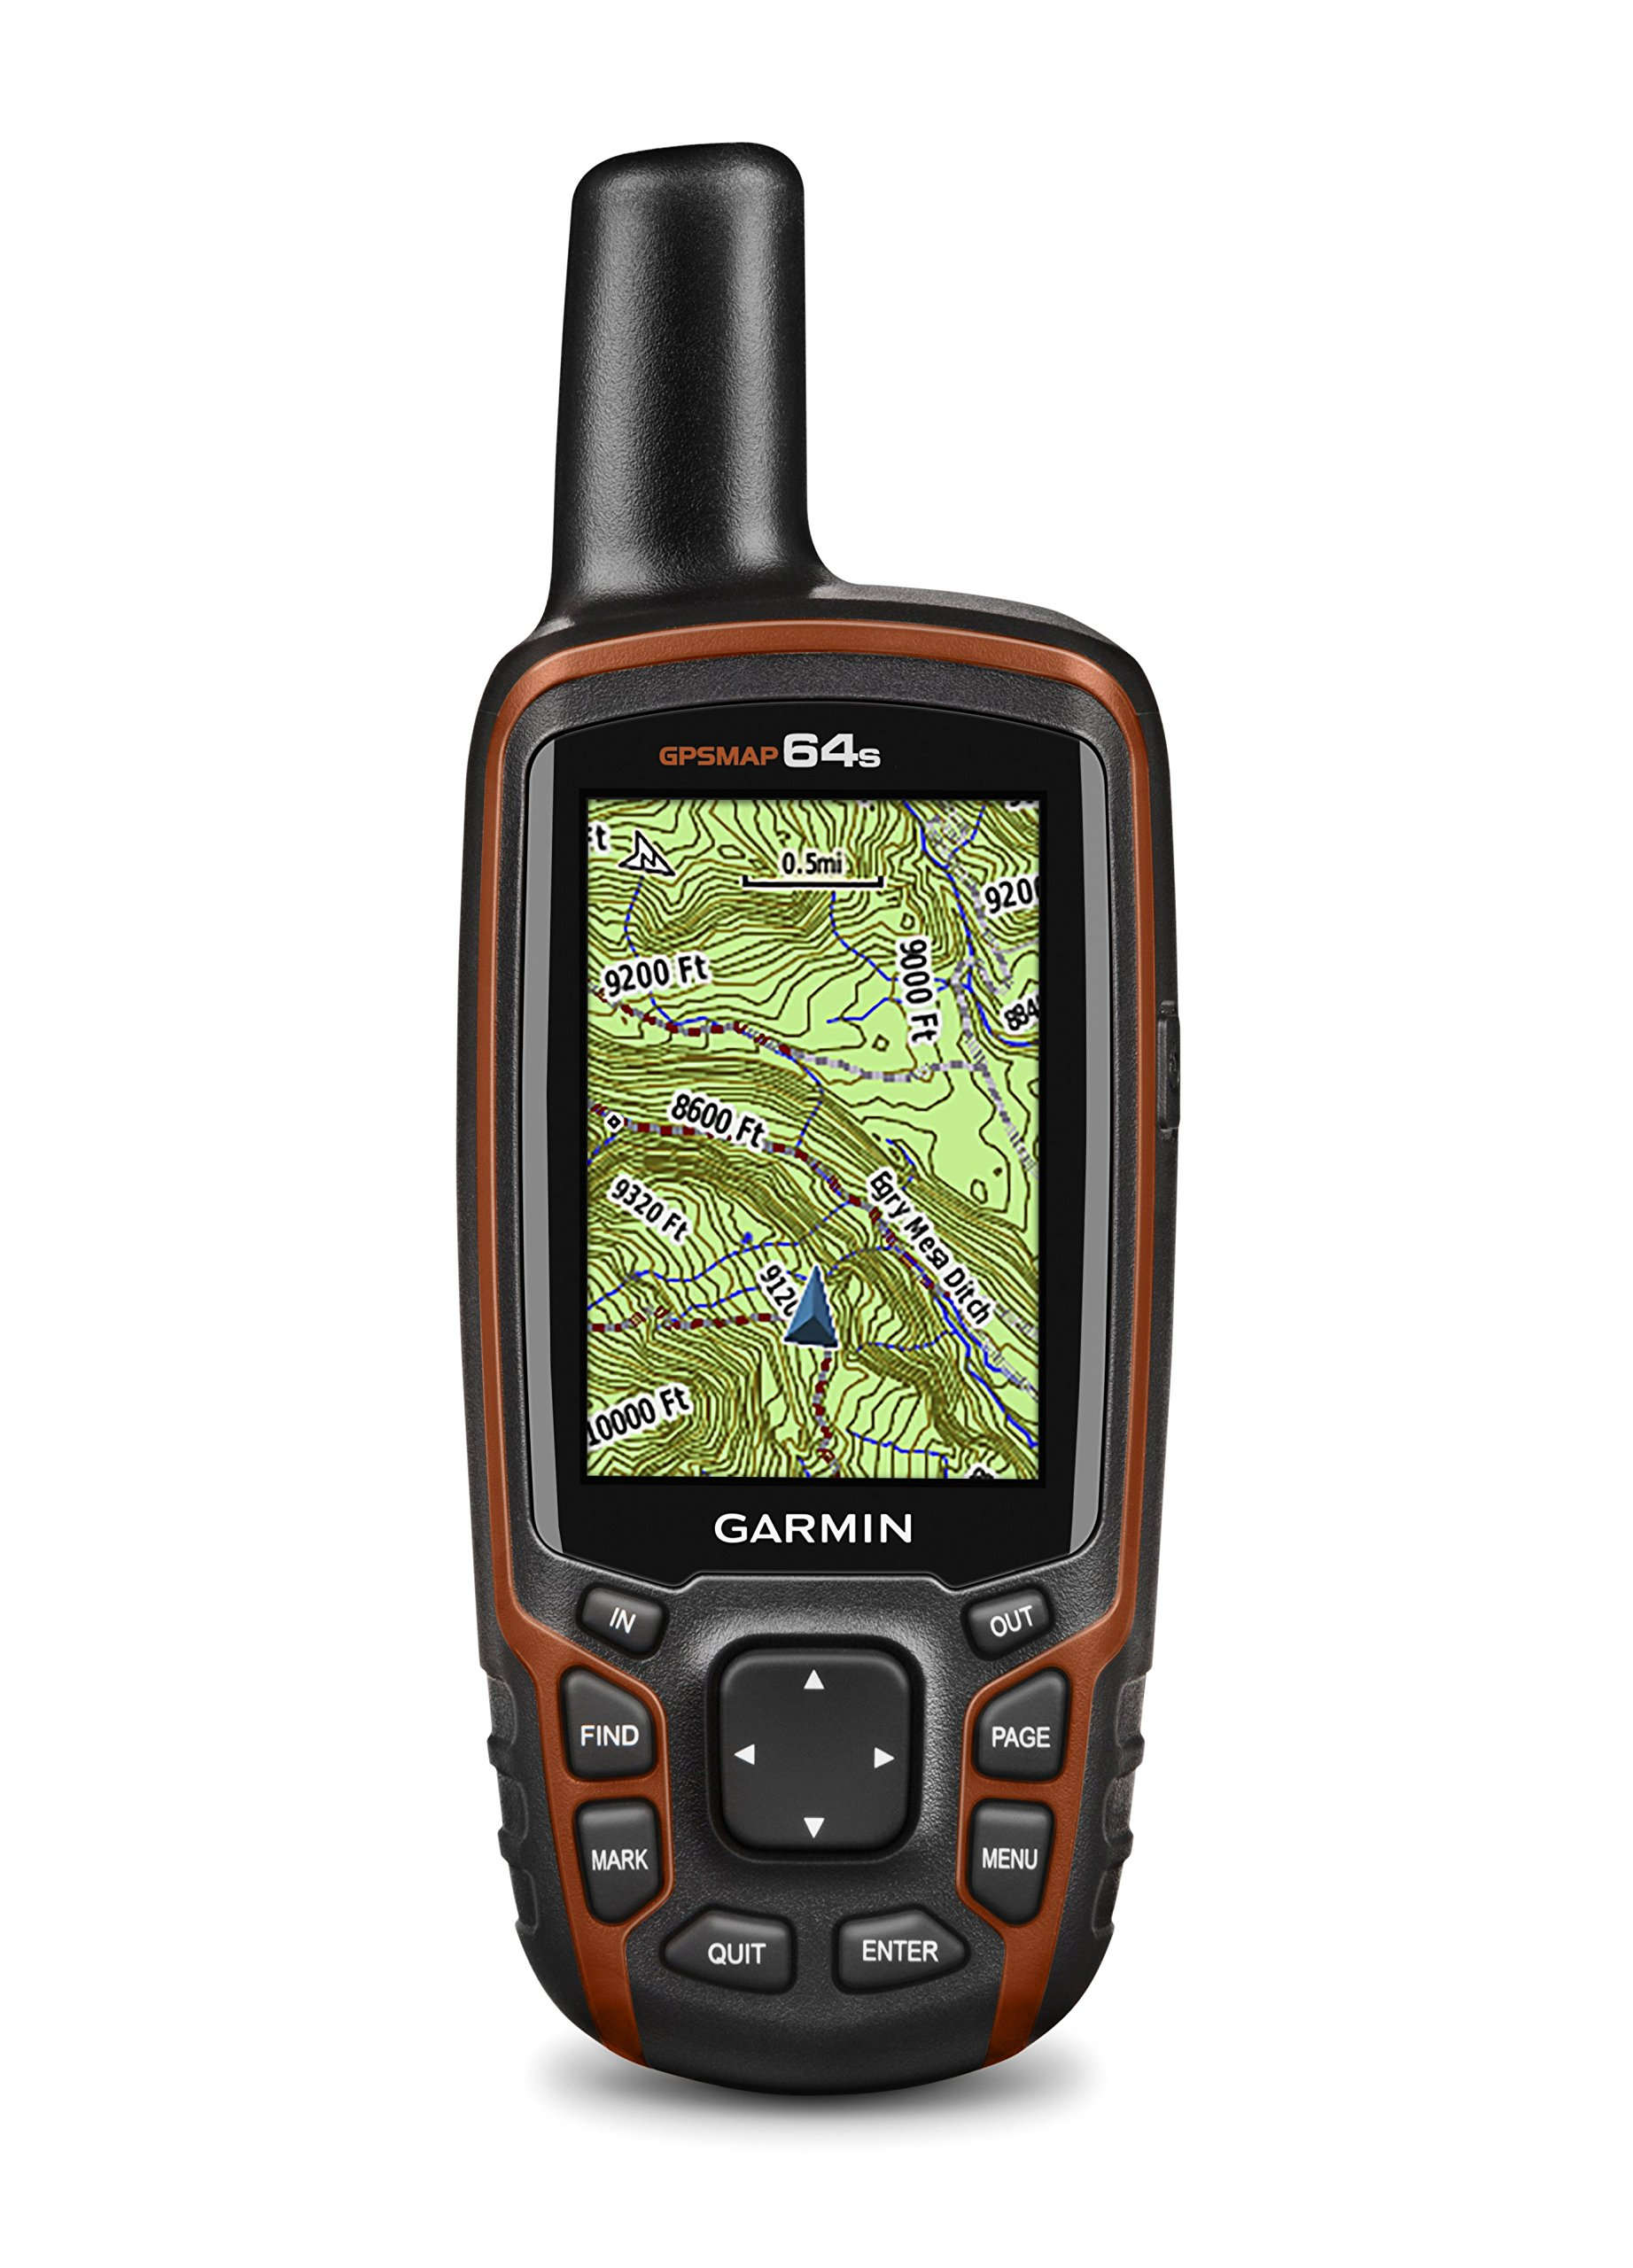 Garmin GPSMAP 64s Handheld Navigator,Black/Red 1